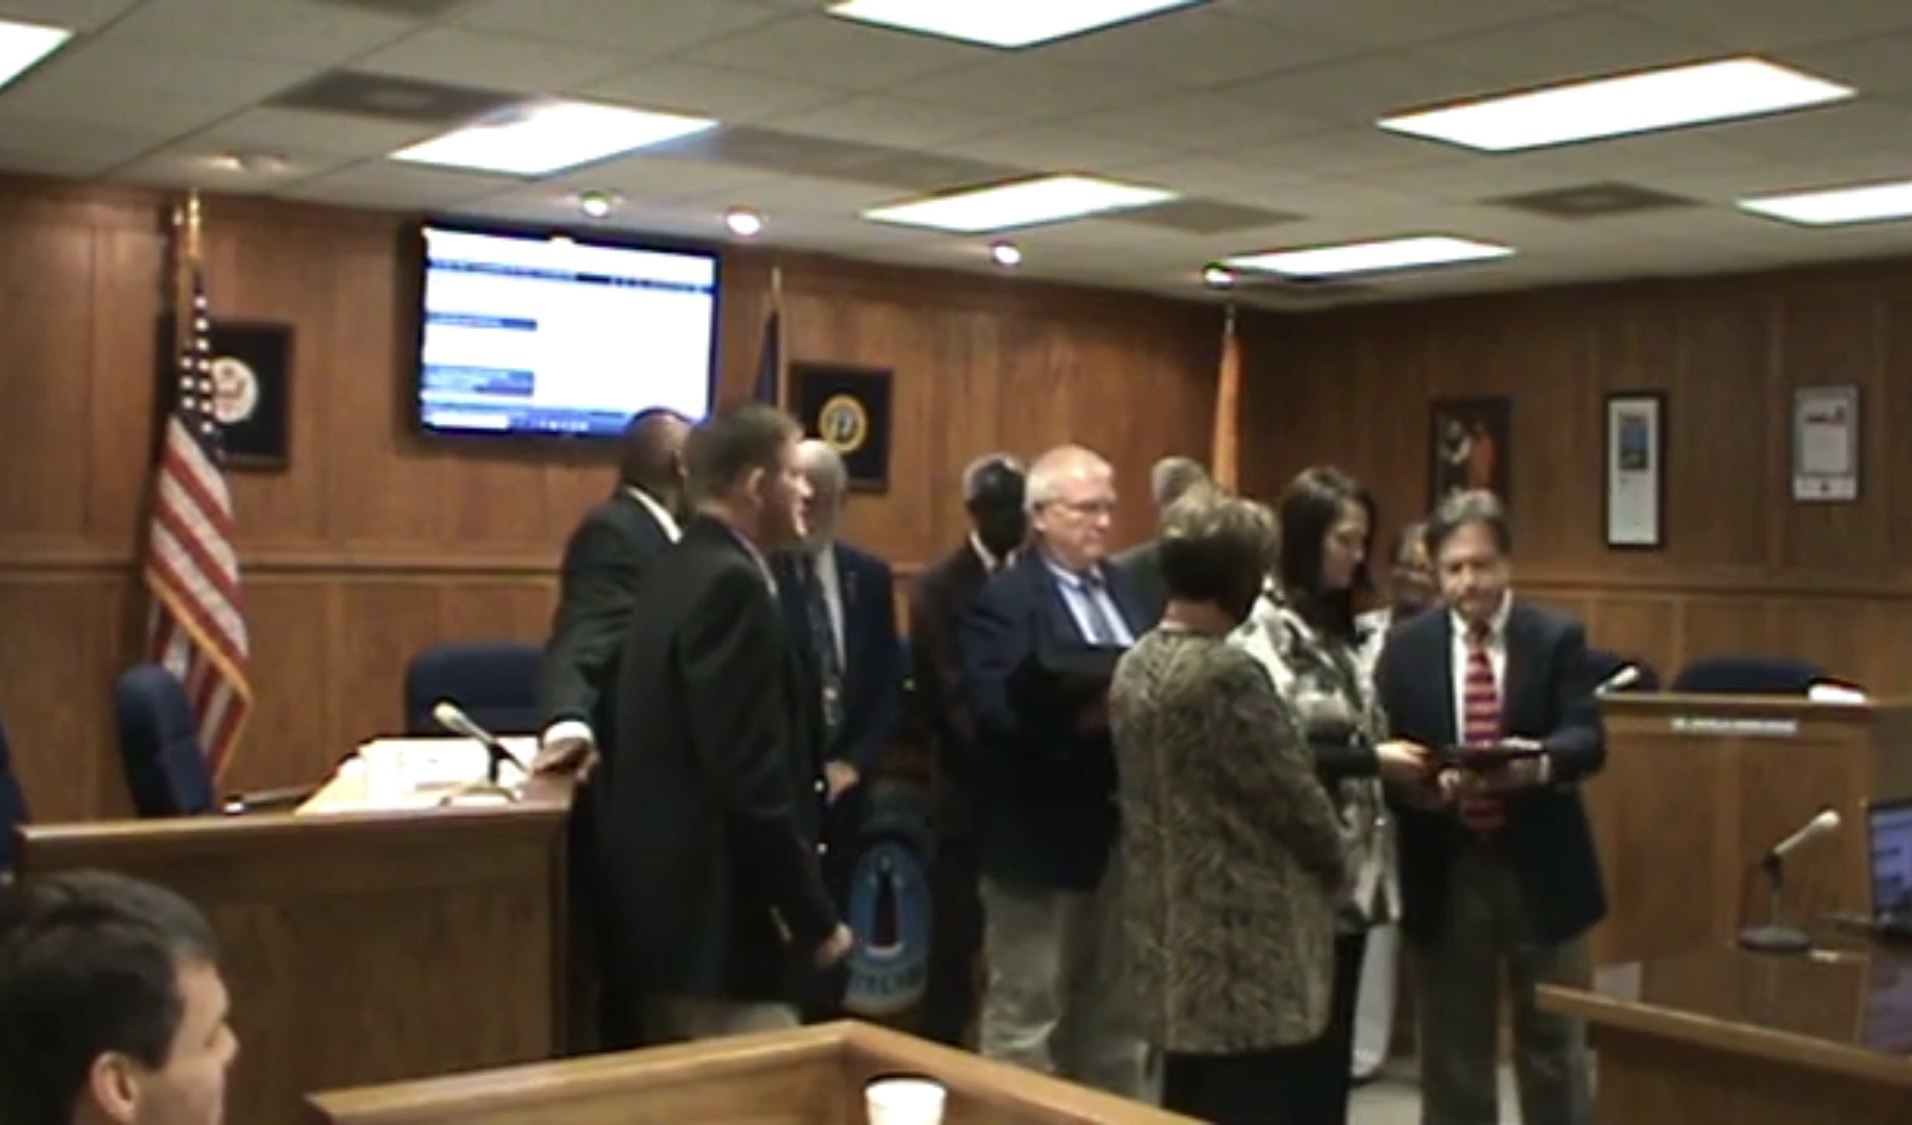 January BC Commissioners meeting